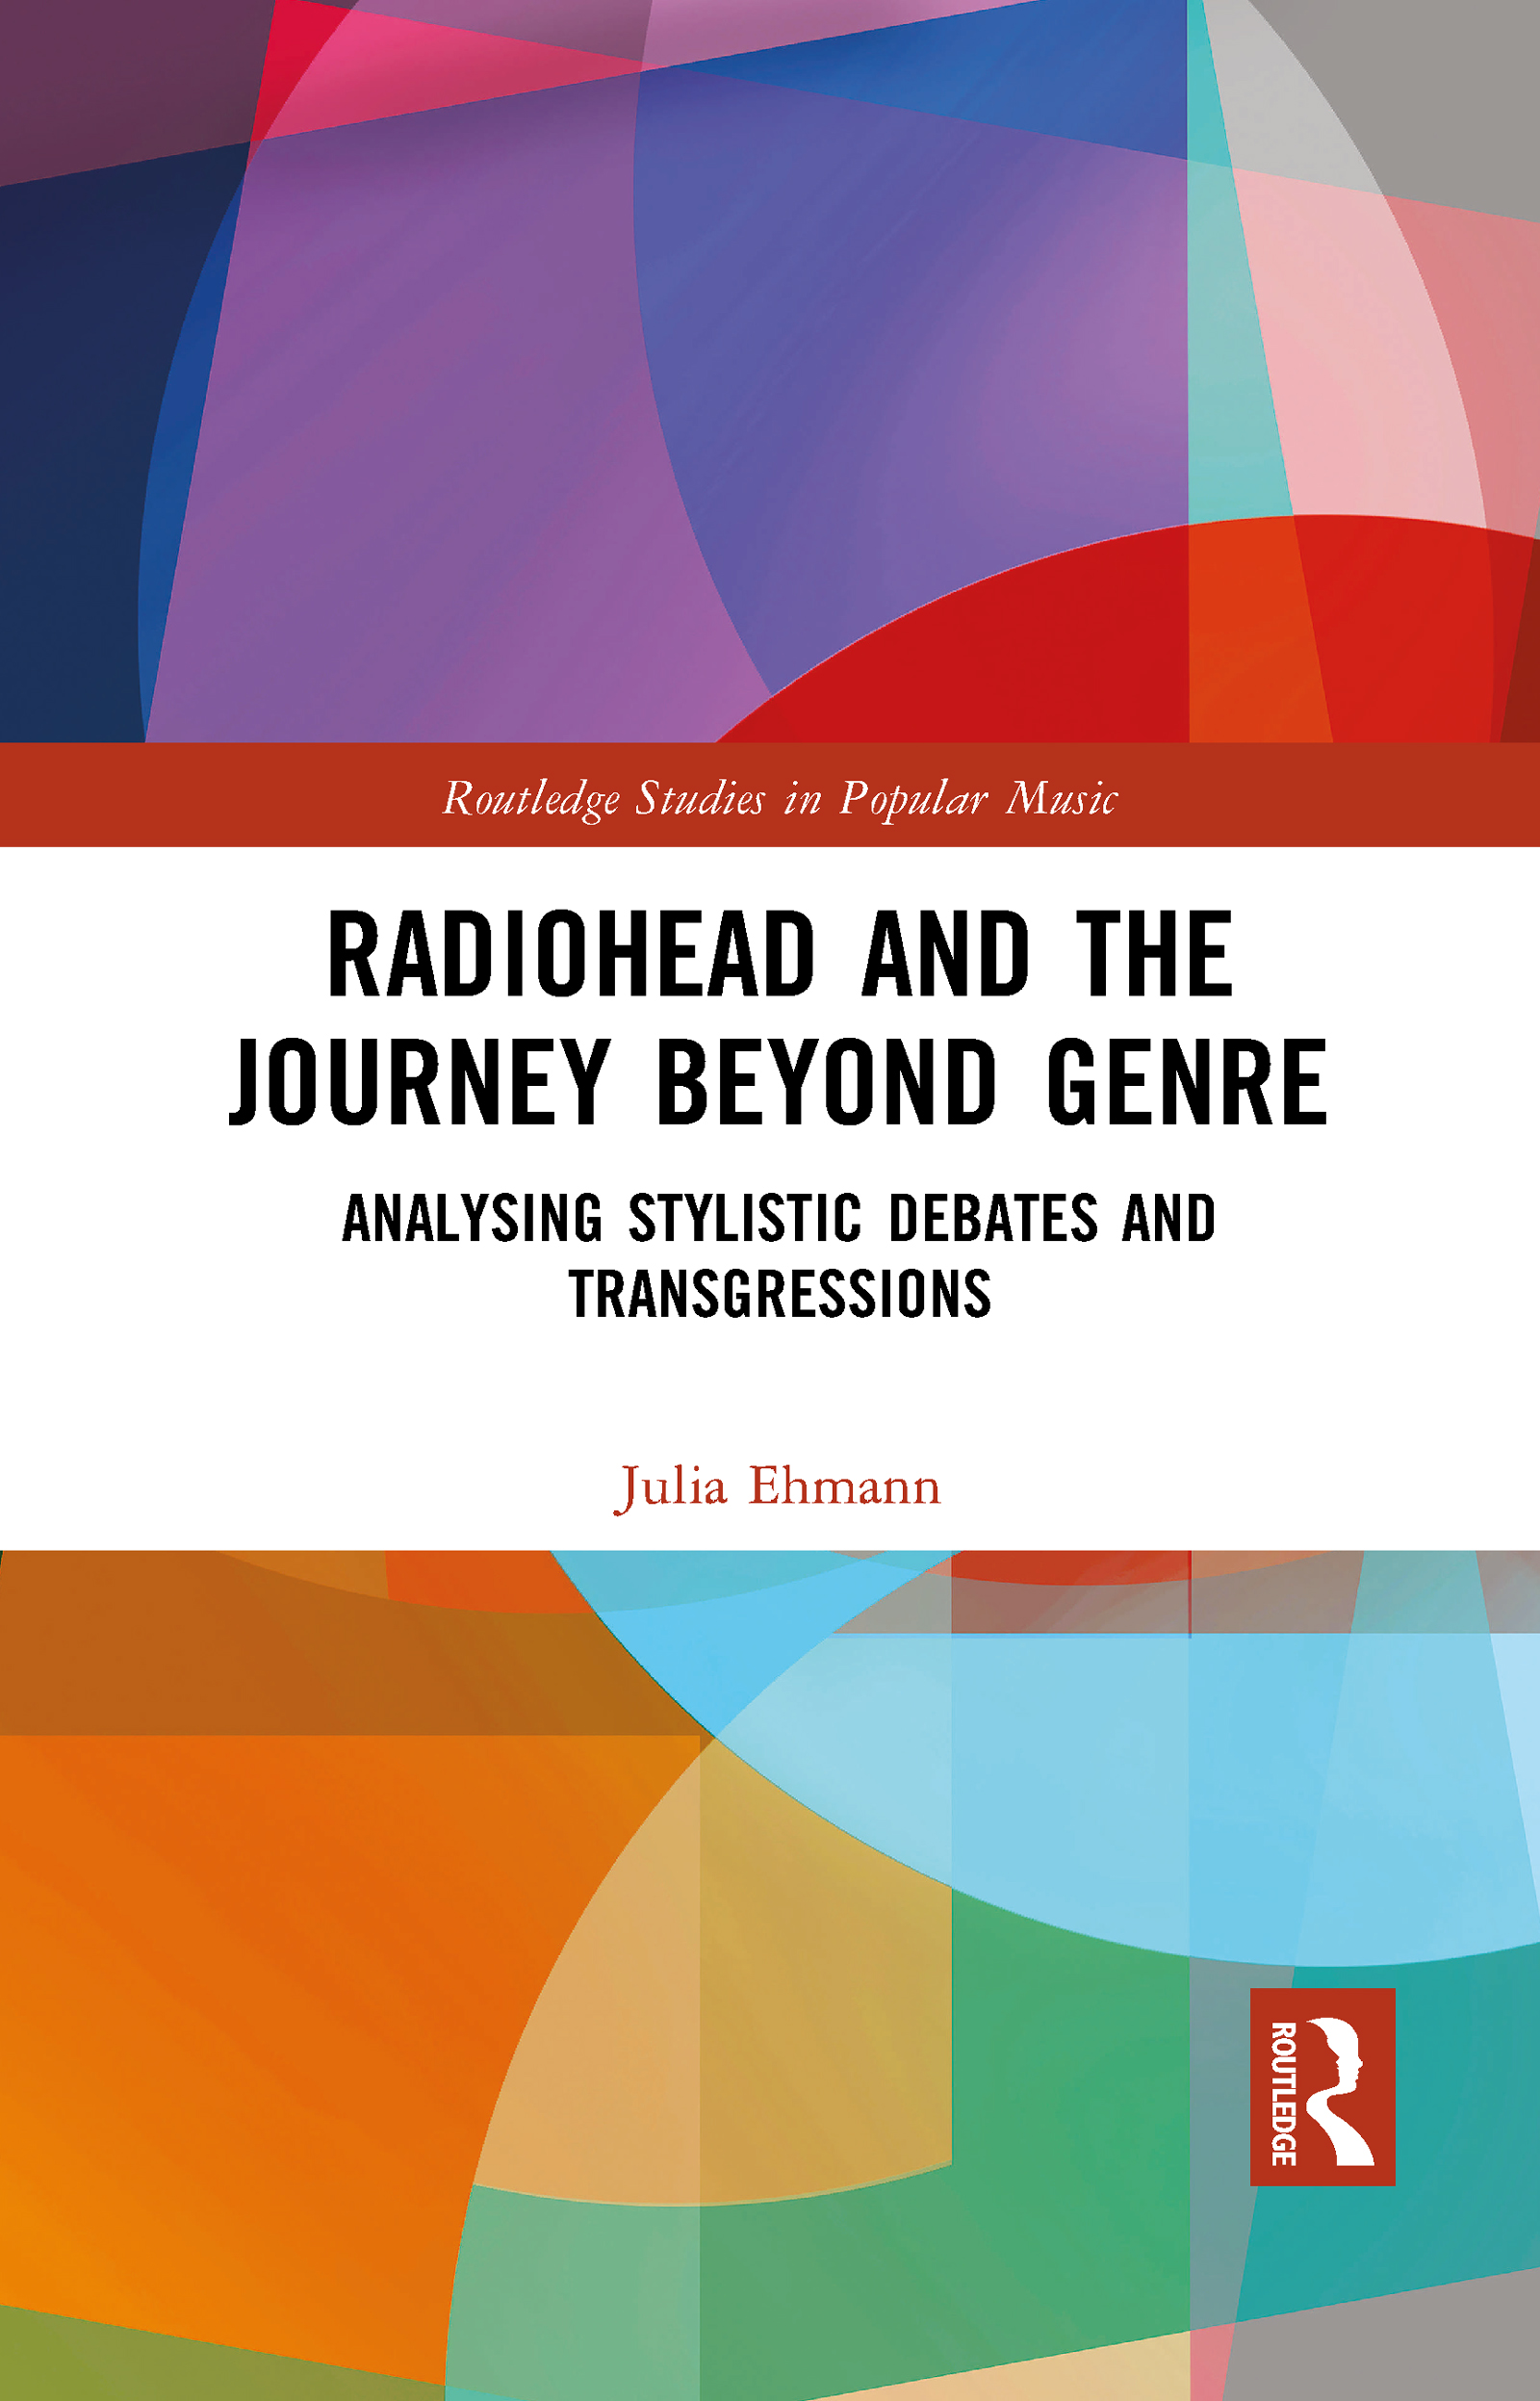 Radiohead and the Journey Beyond Genre